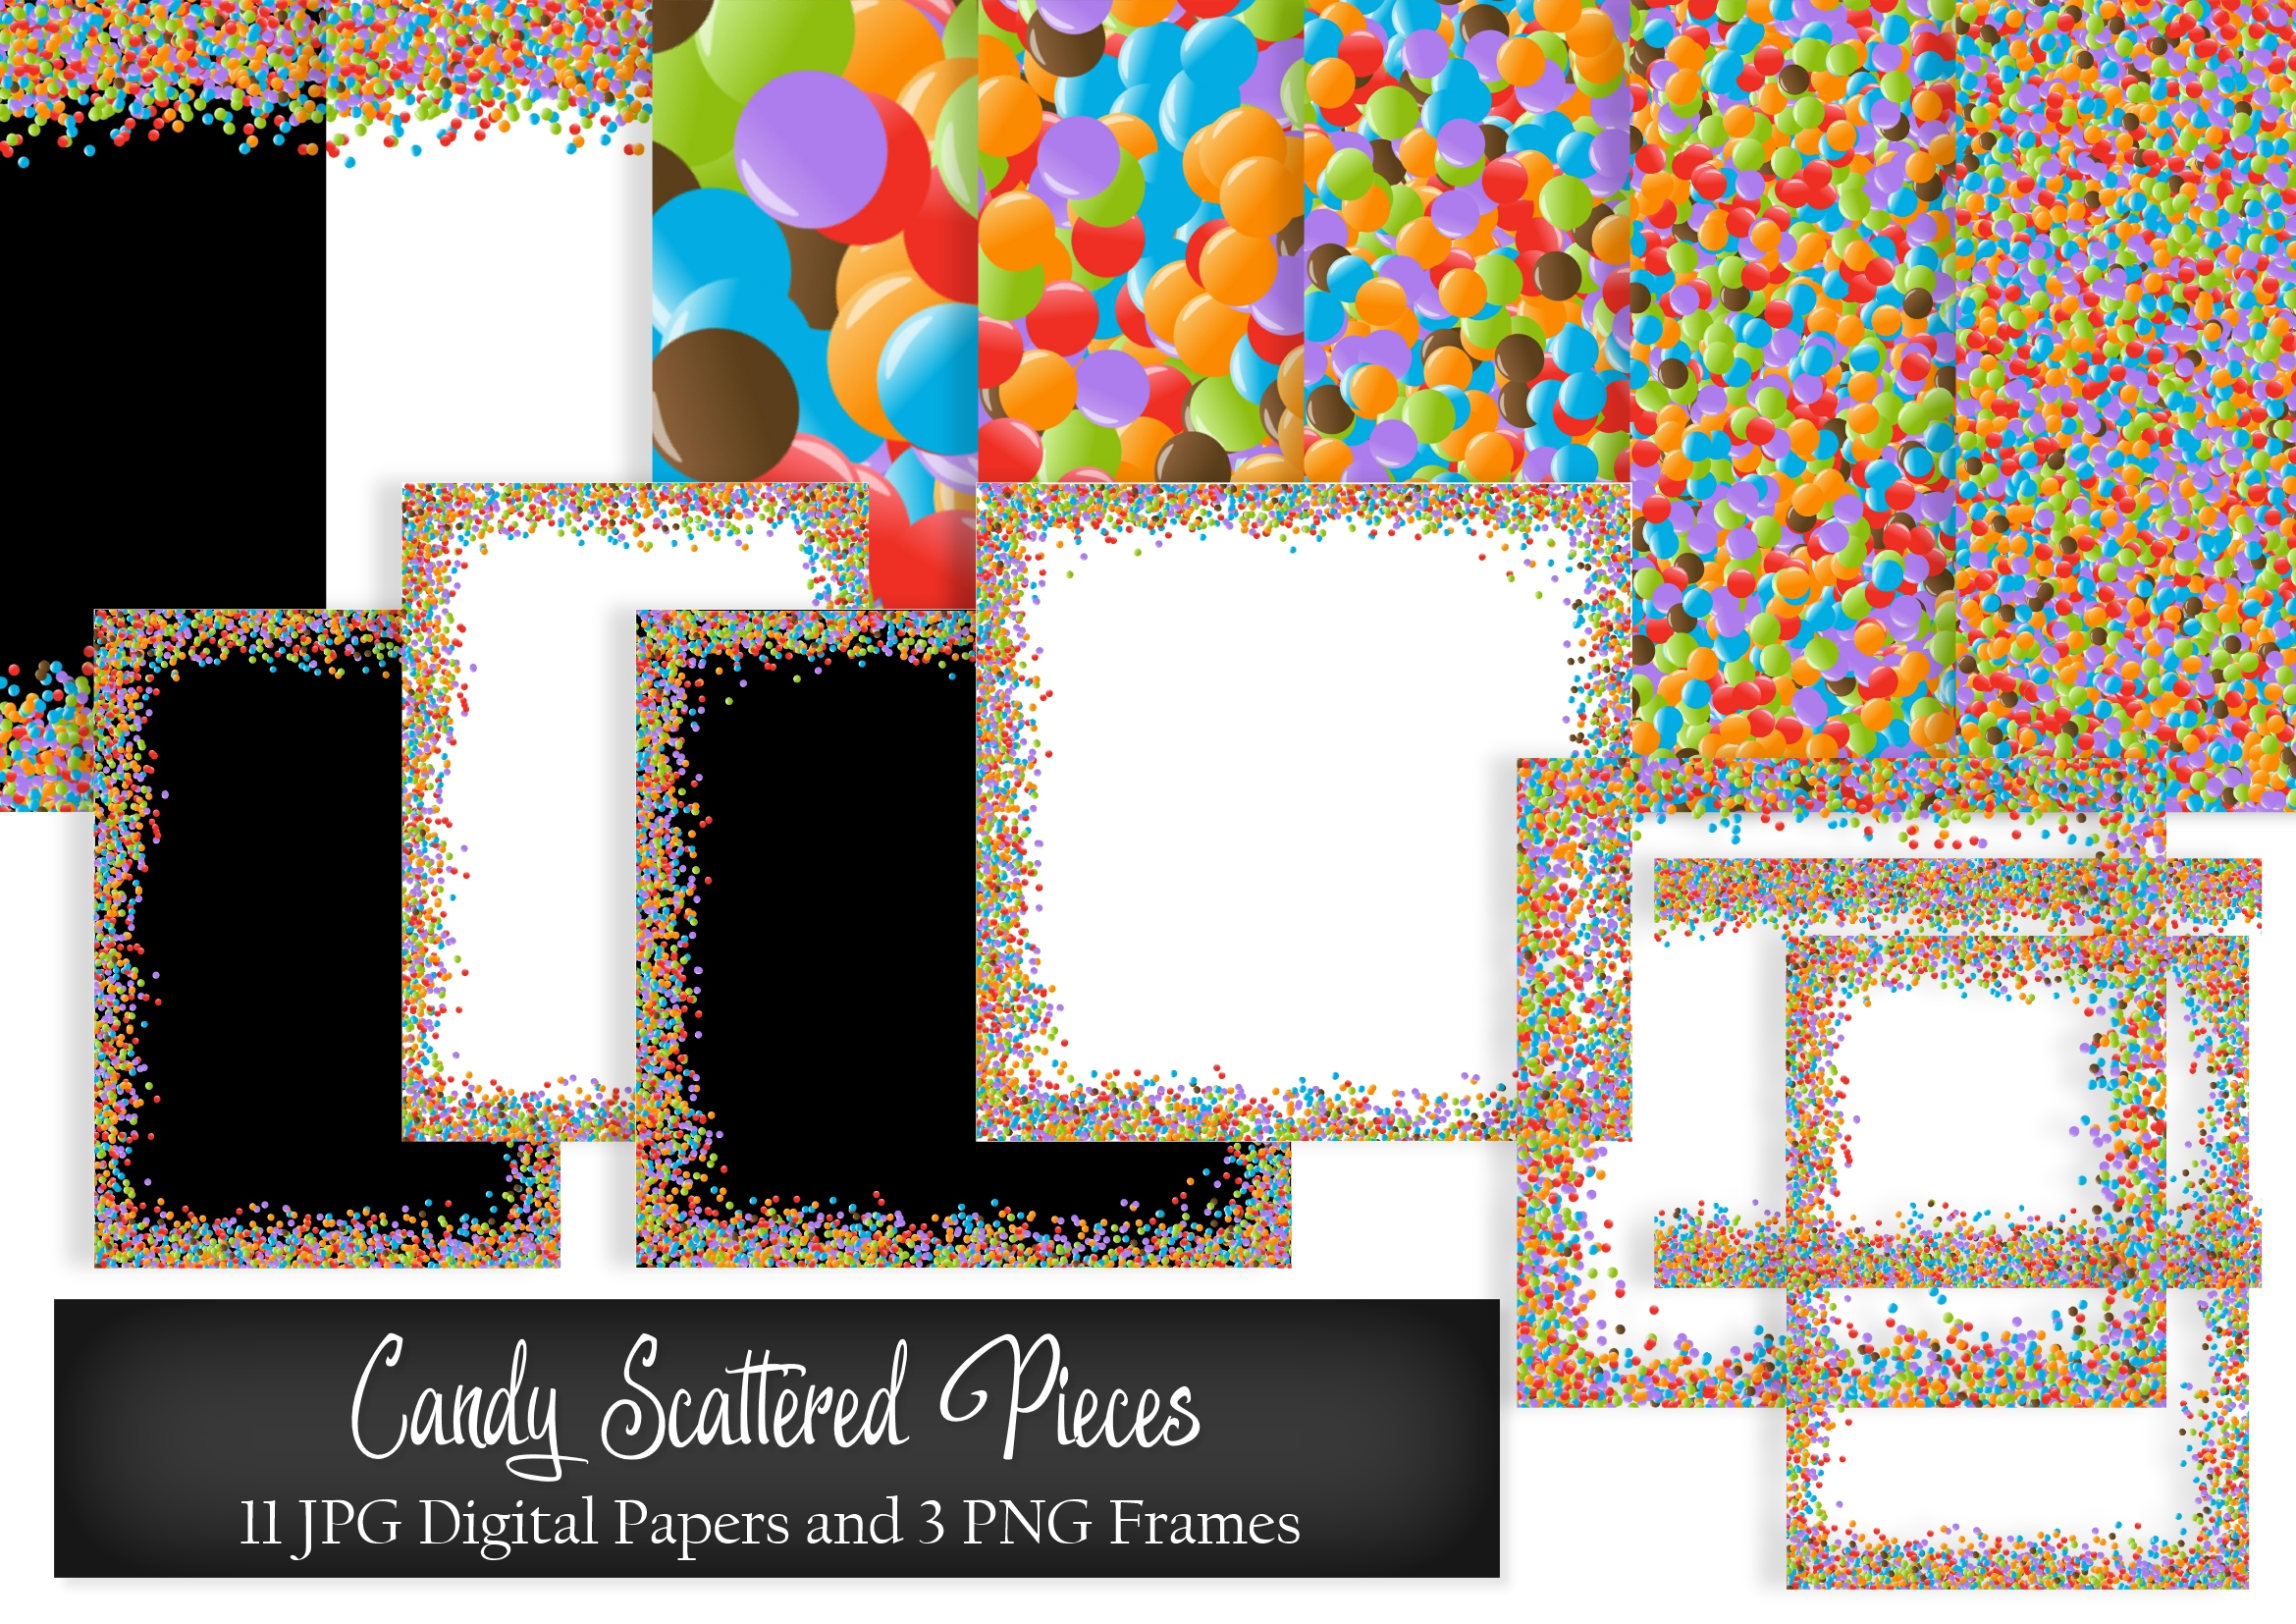 Download Free Candy Scattered Pieces Digital Paper Graphic By Simply Paper for Cricut Explore, Silhouette and other cutting machines.